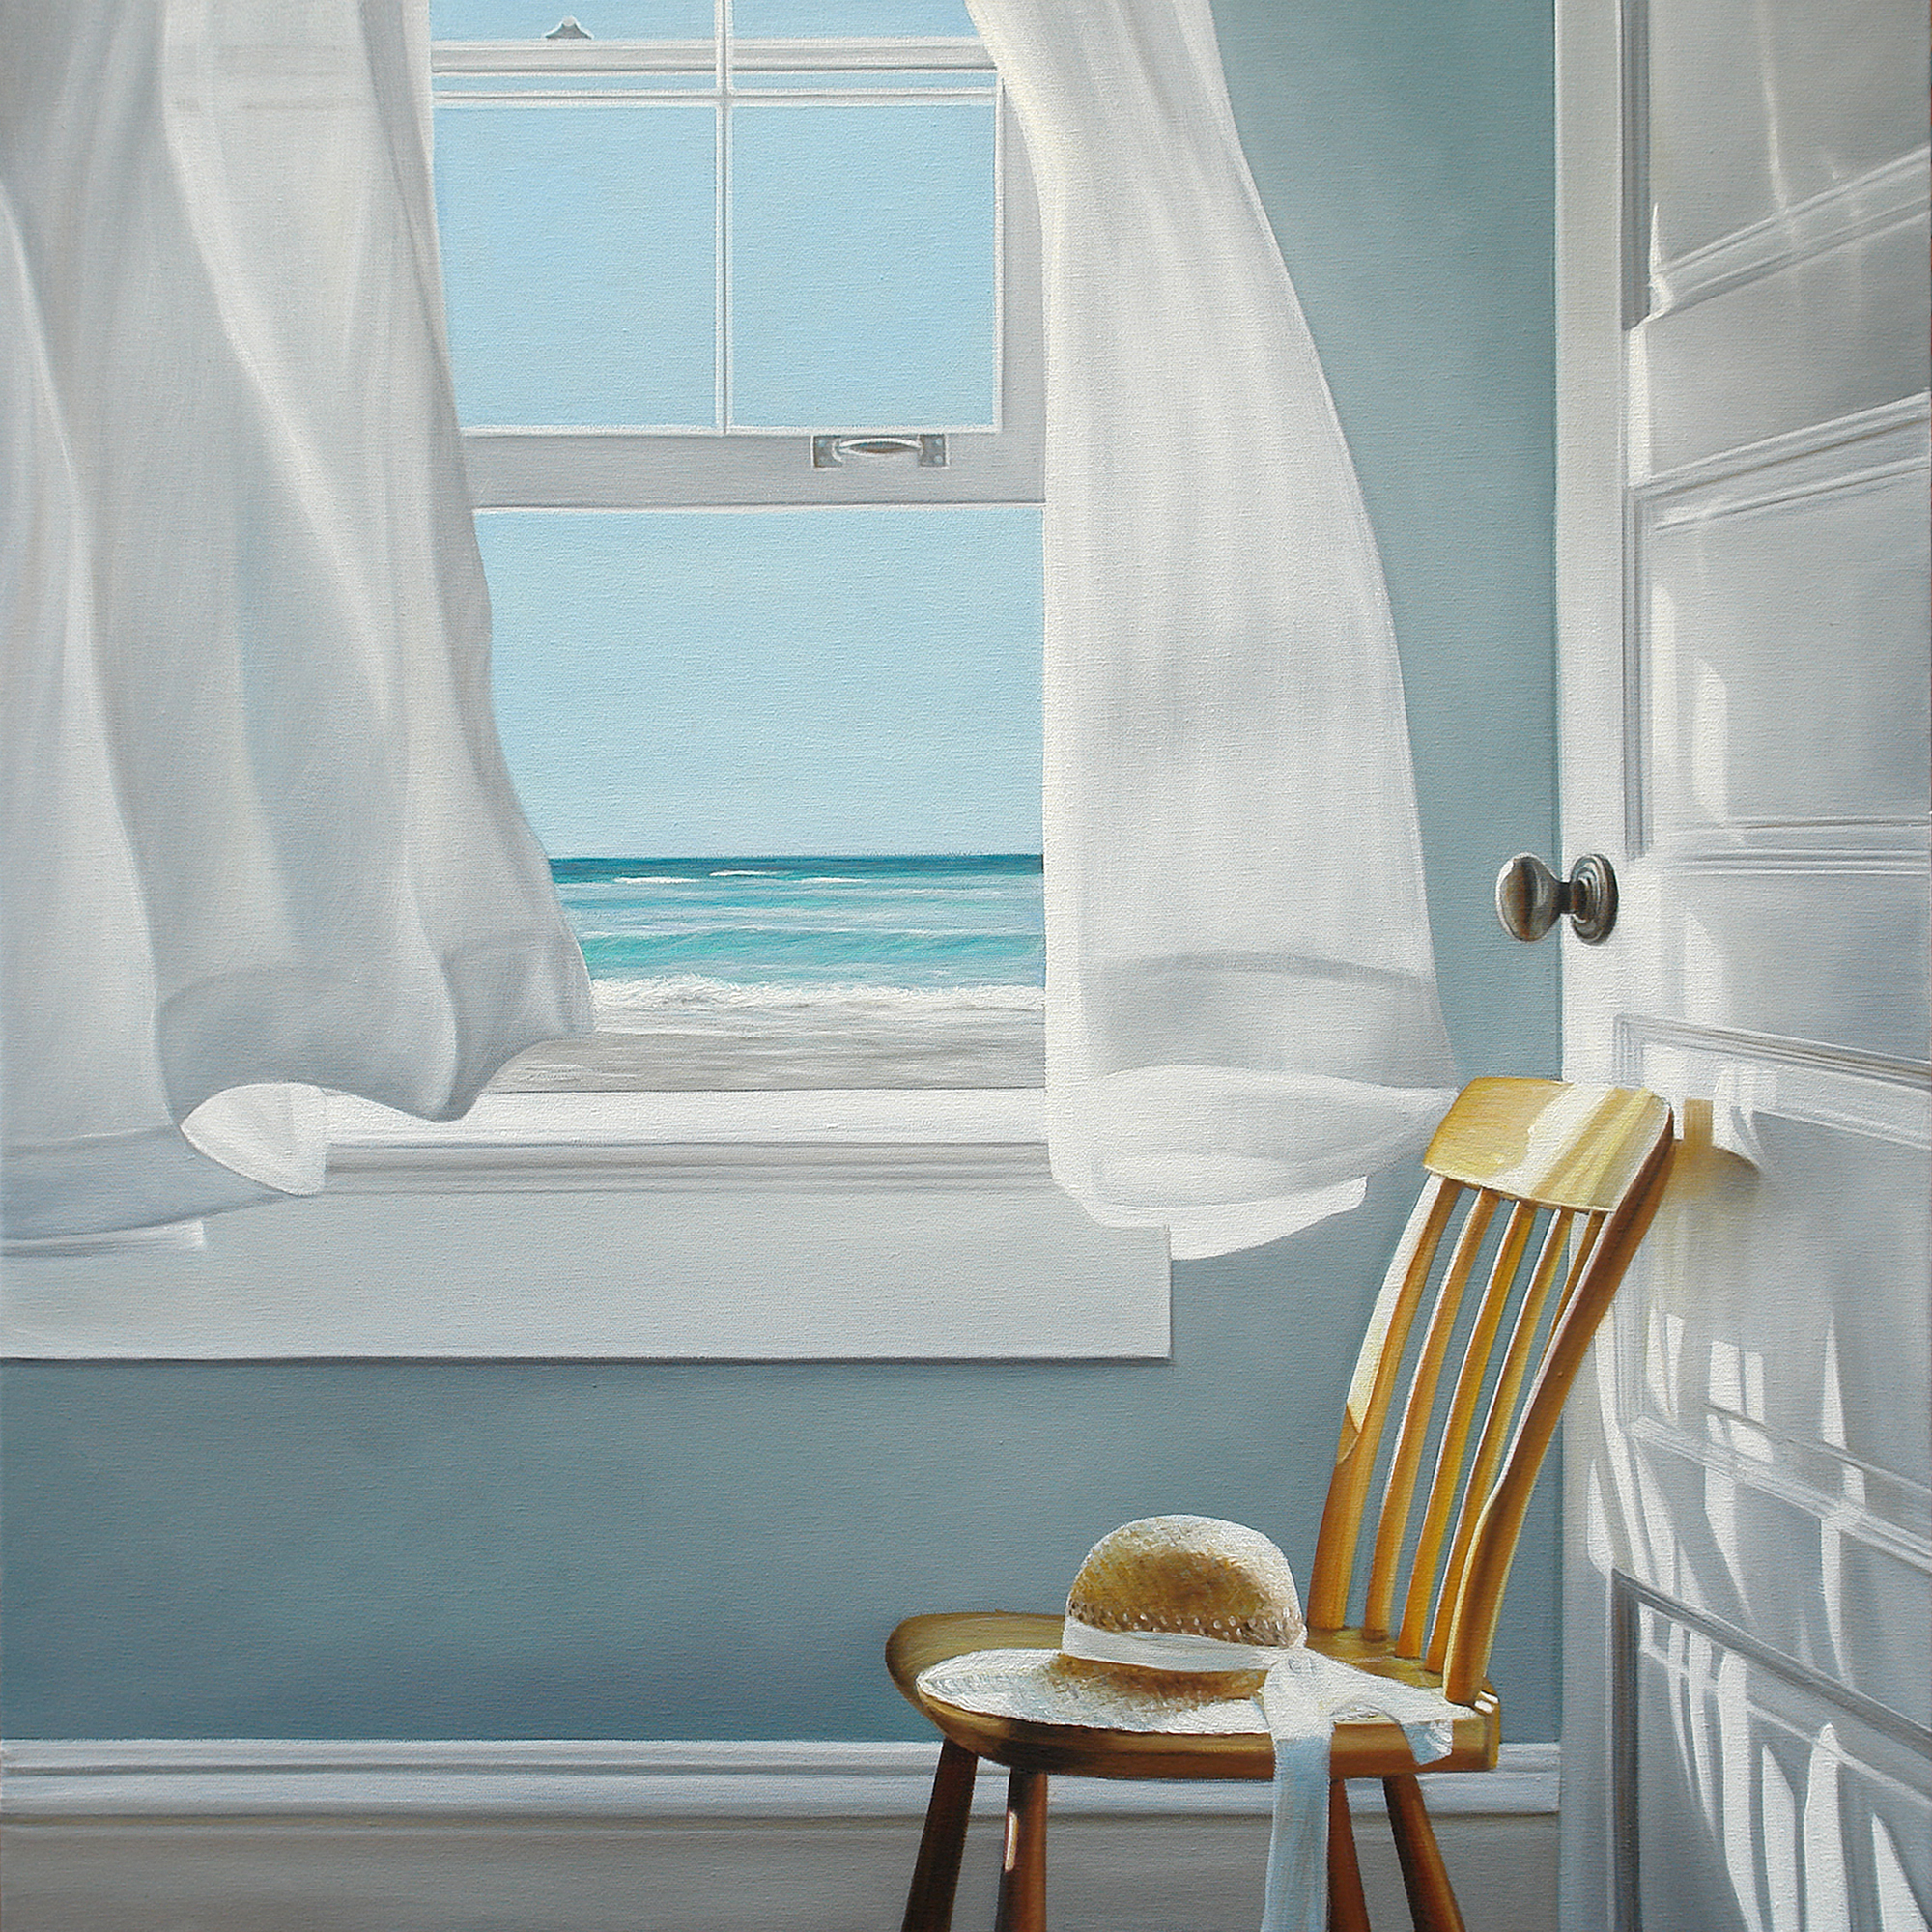 Dreaming of Summer | 30 x 30 | Oil on canvas